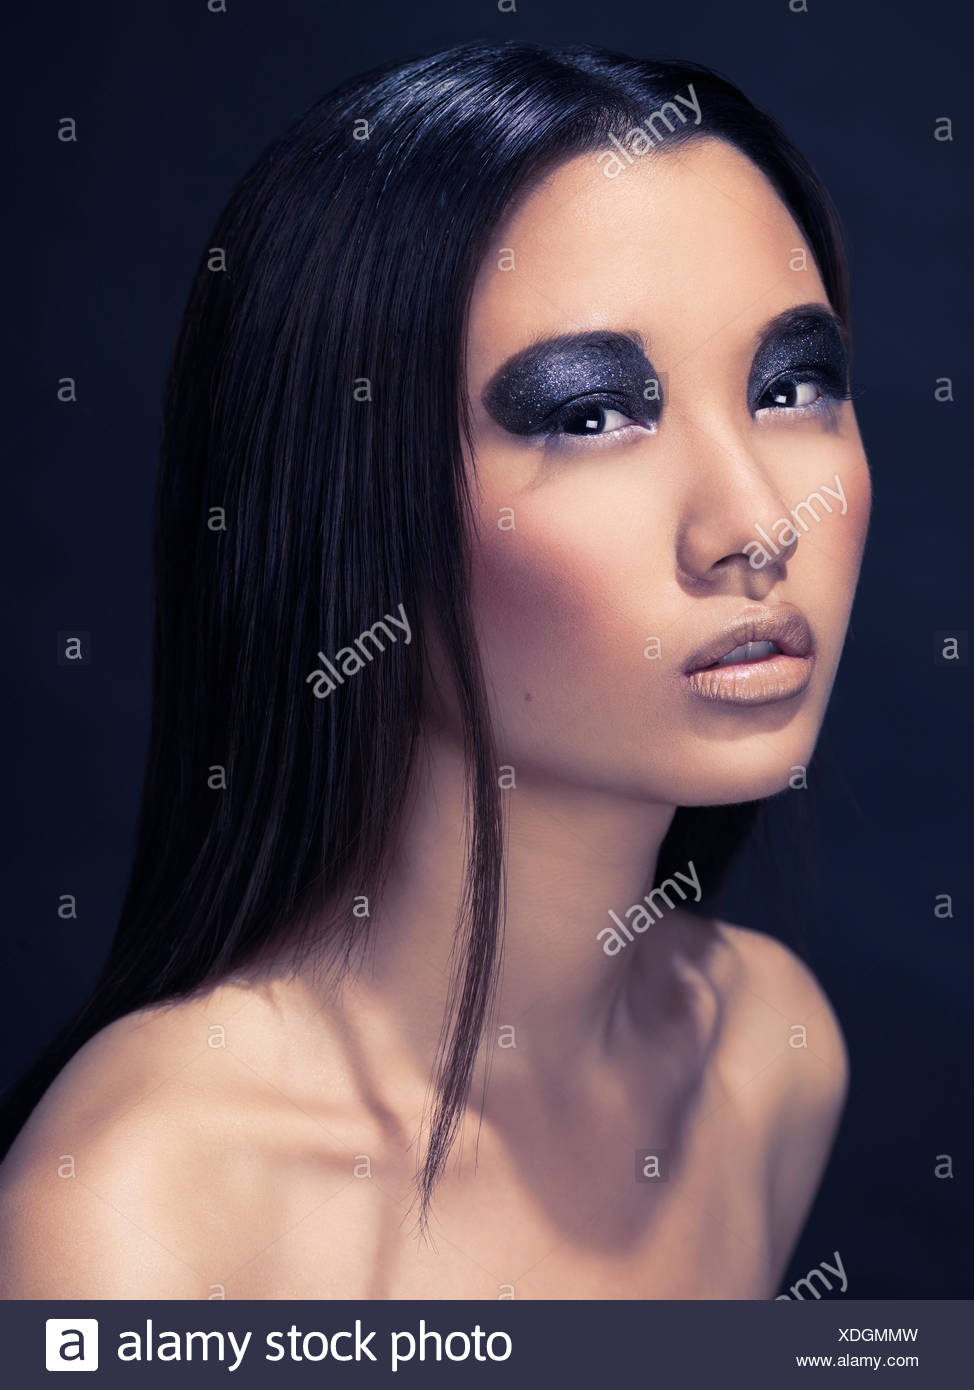 Woman wearing dark eyeshadow - Stock Image